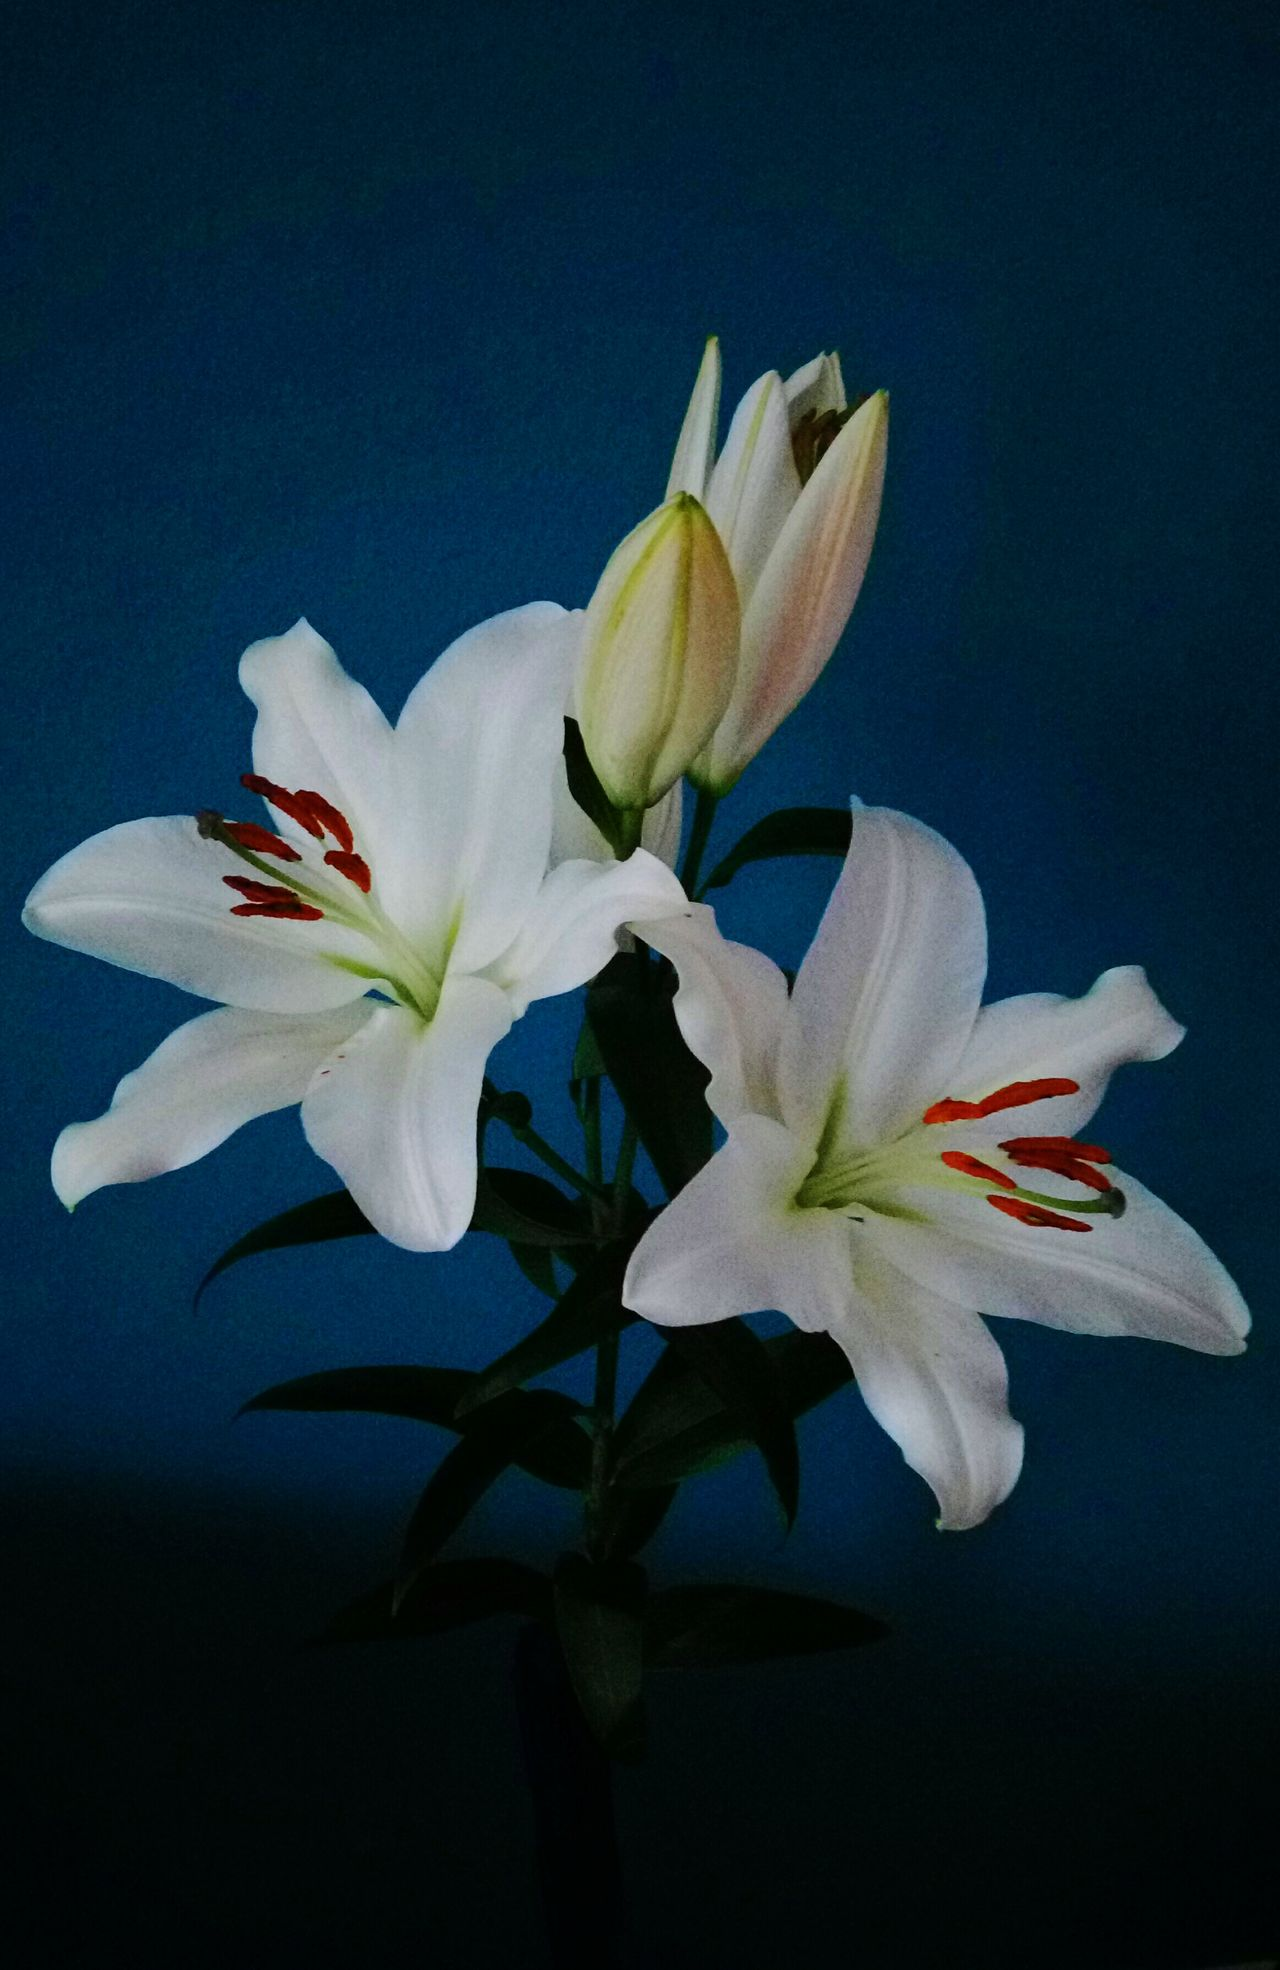 Flower Petal Flower Head Fragility Beauty In Nature Plant Nature No People Close-up Freshness Iris - Plant Day Lily Flower Blue Color Blue Background Lily Style Fleur De Lis Flowers, Nature And Beauty Flowers_collection Lilies White Flower Urban Lifestyle Beauty In Ordinary Things Branch